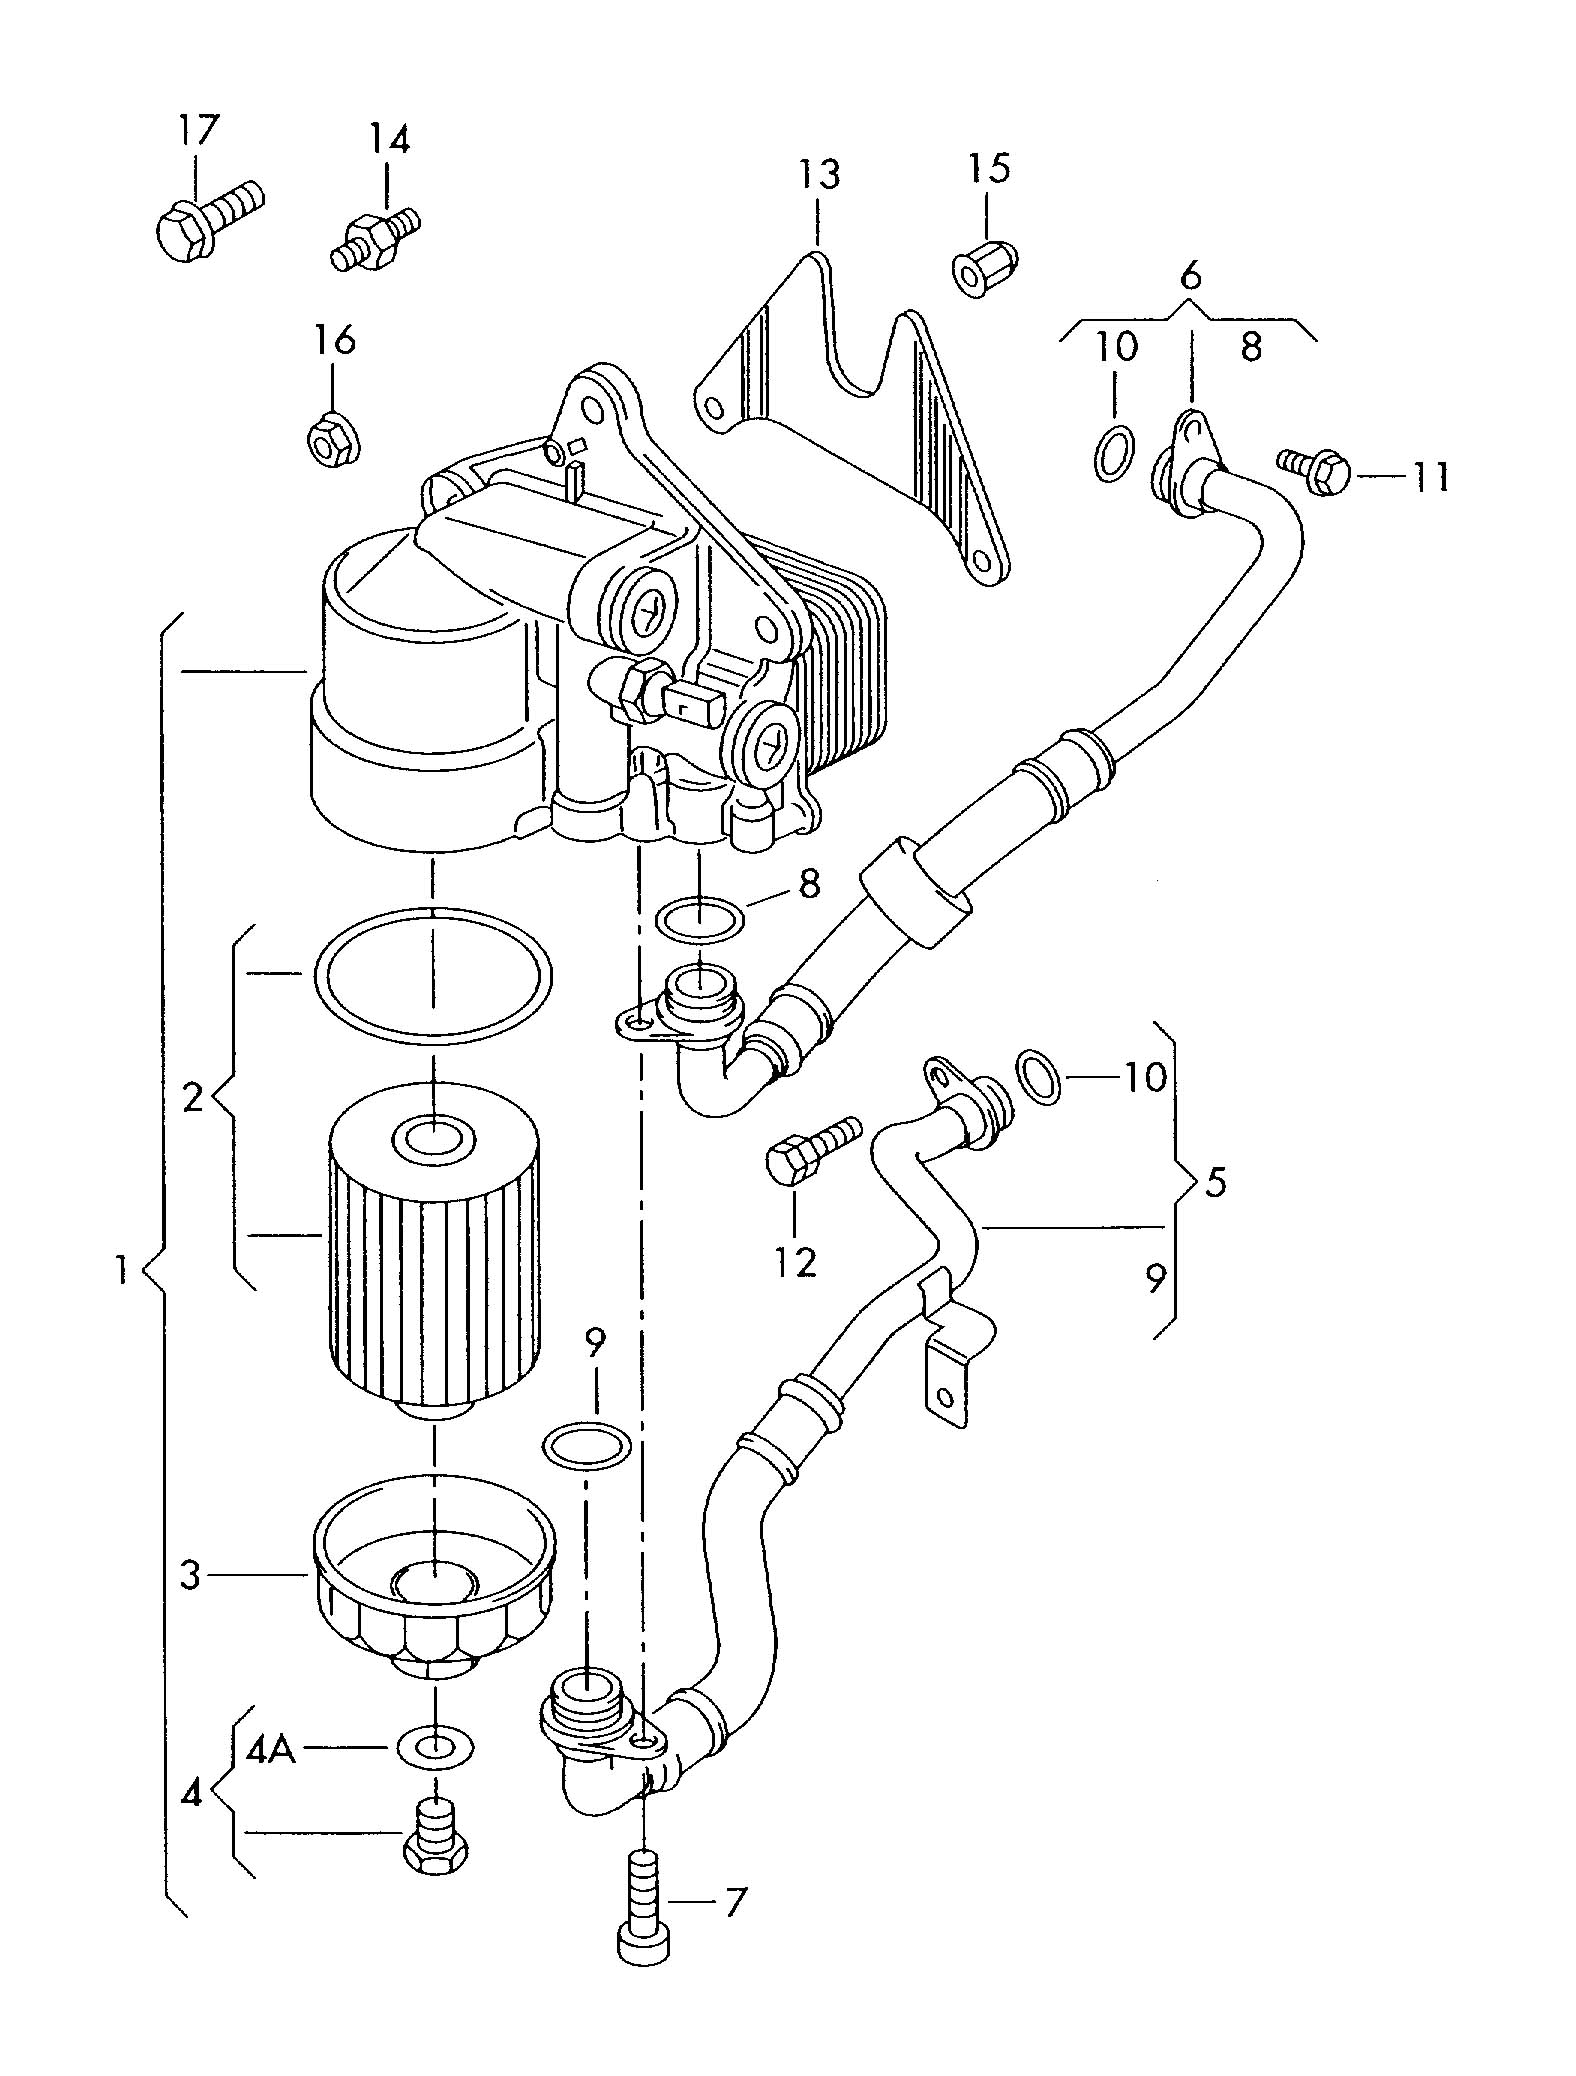 W8 Engine Oil Cooler, W8, Free Engine Image For User